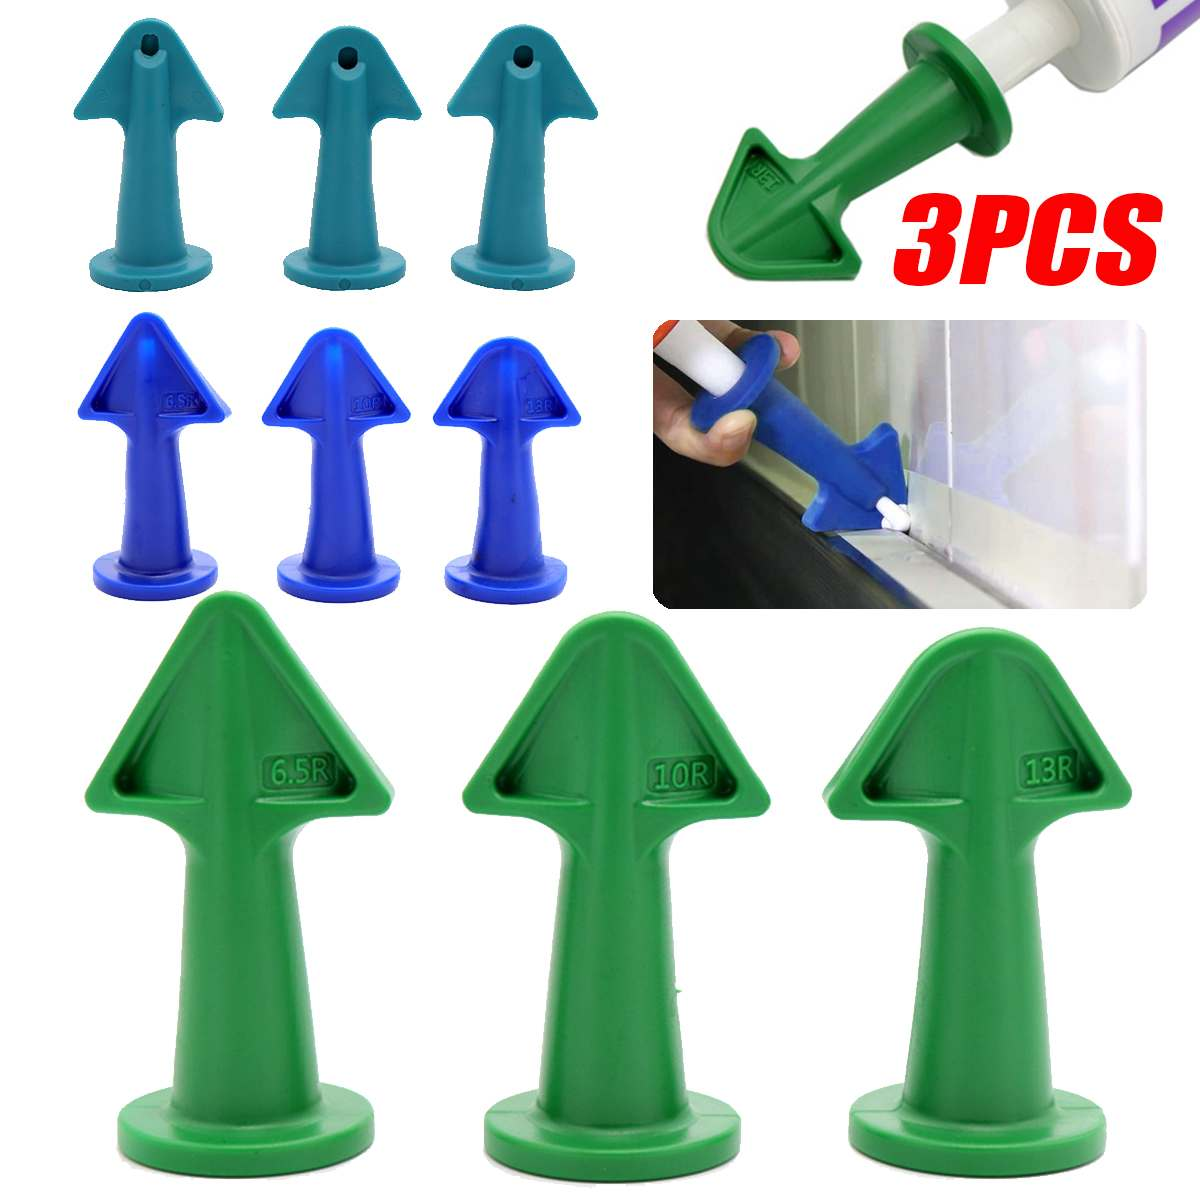 3 Colors Glue Nozzle Scraper Caulking Grouting Sealant Finishing Clean Remover Tool 3pcs/Set Scraper 6.5R+10R+13R